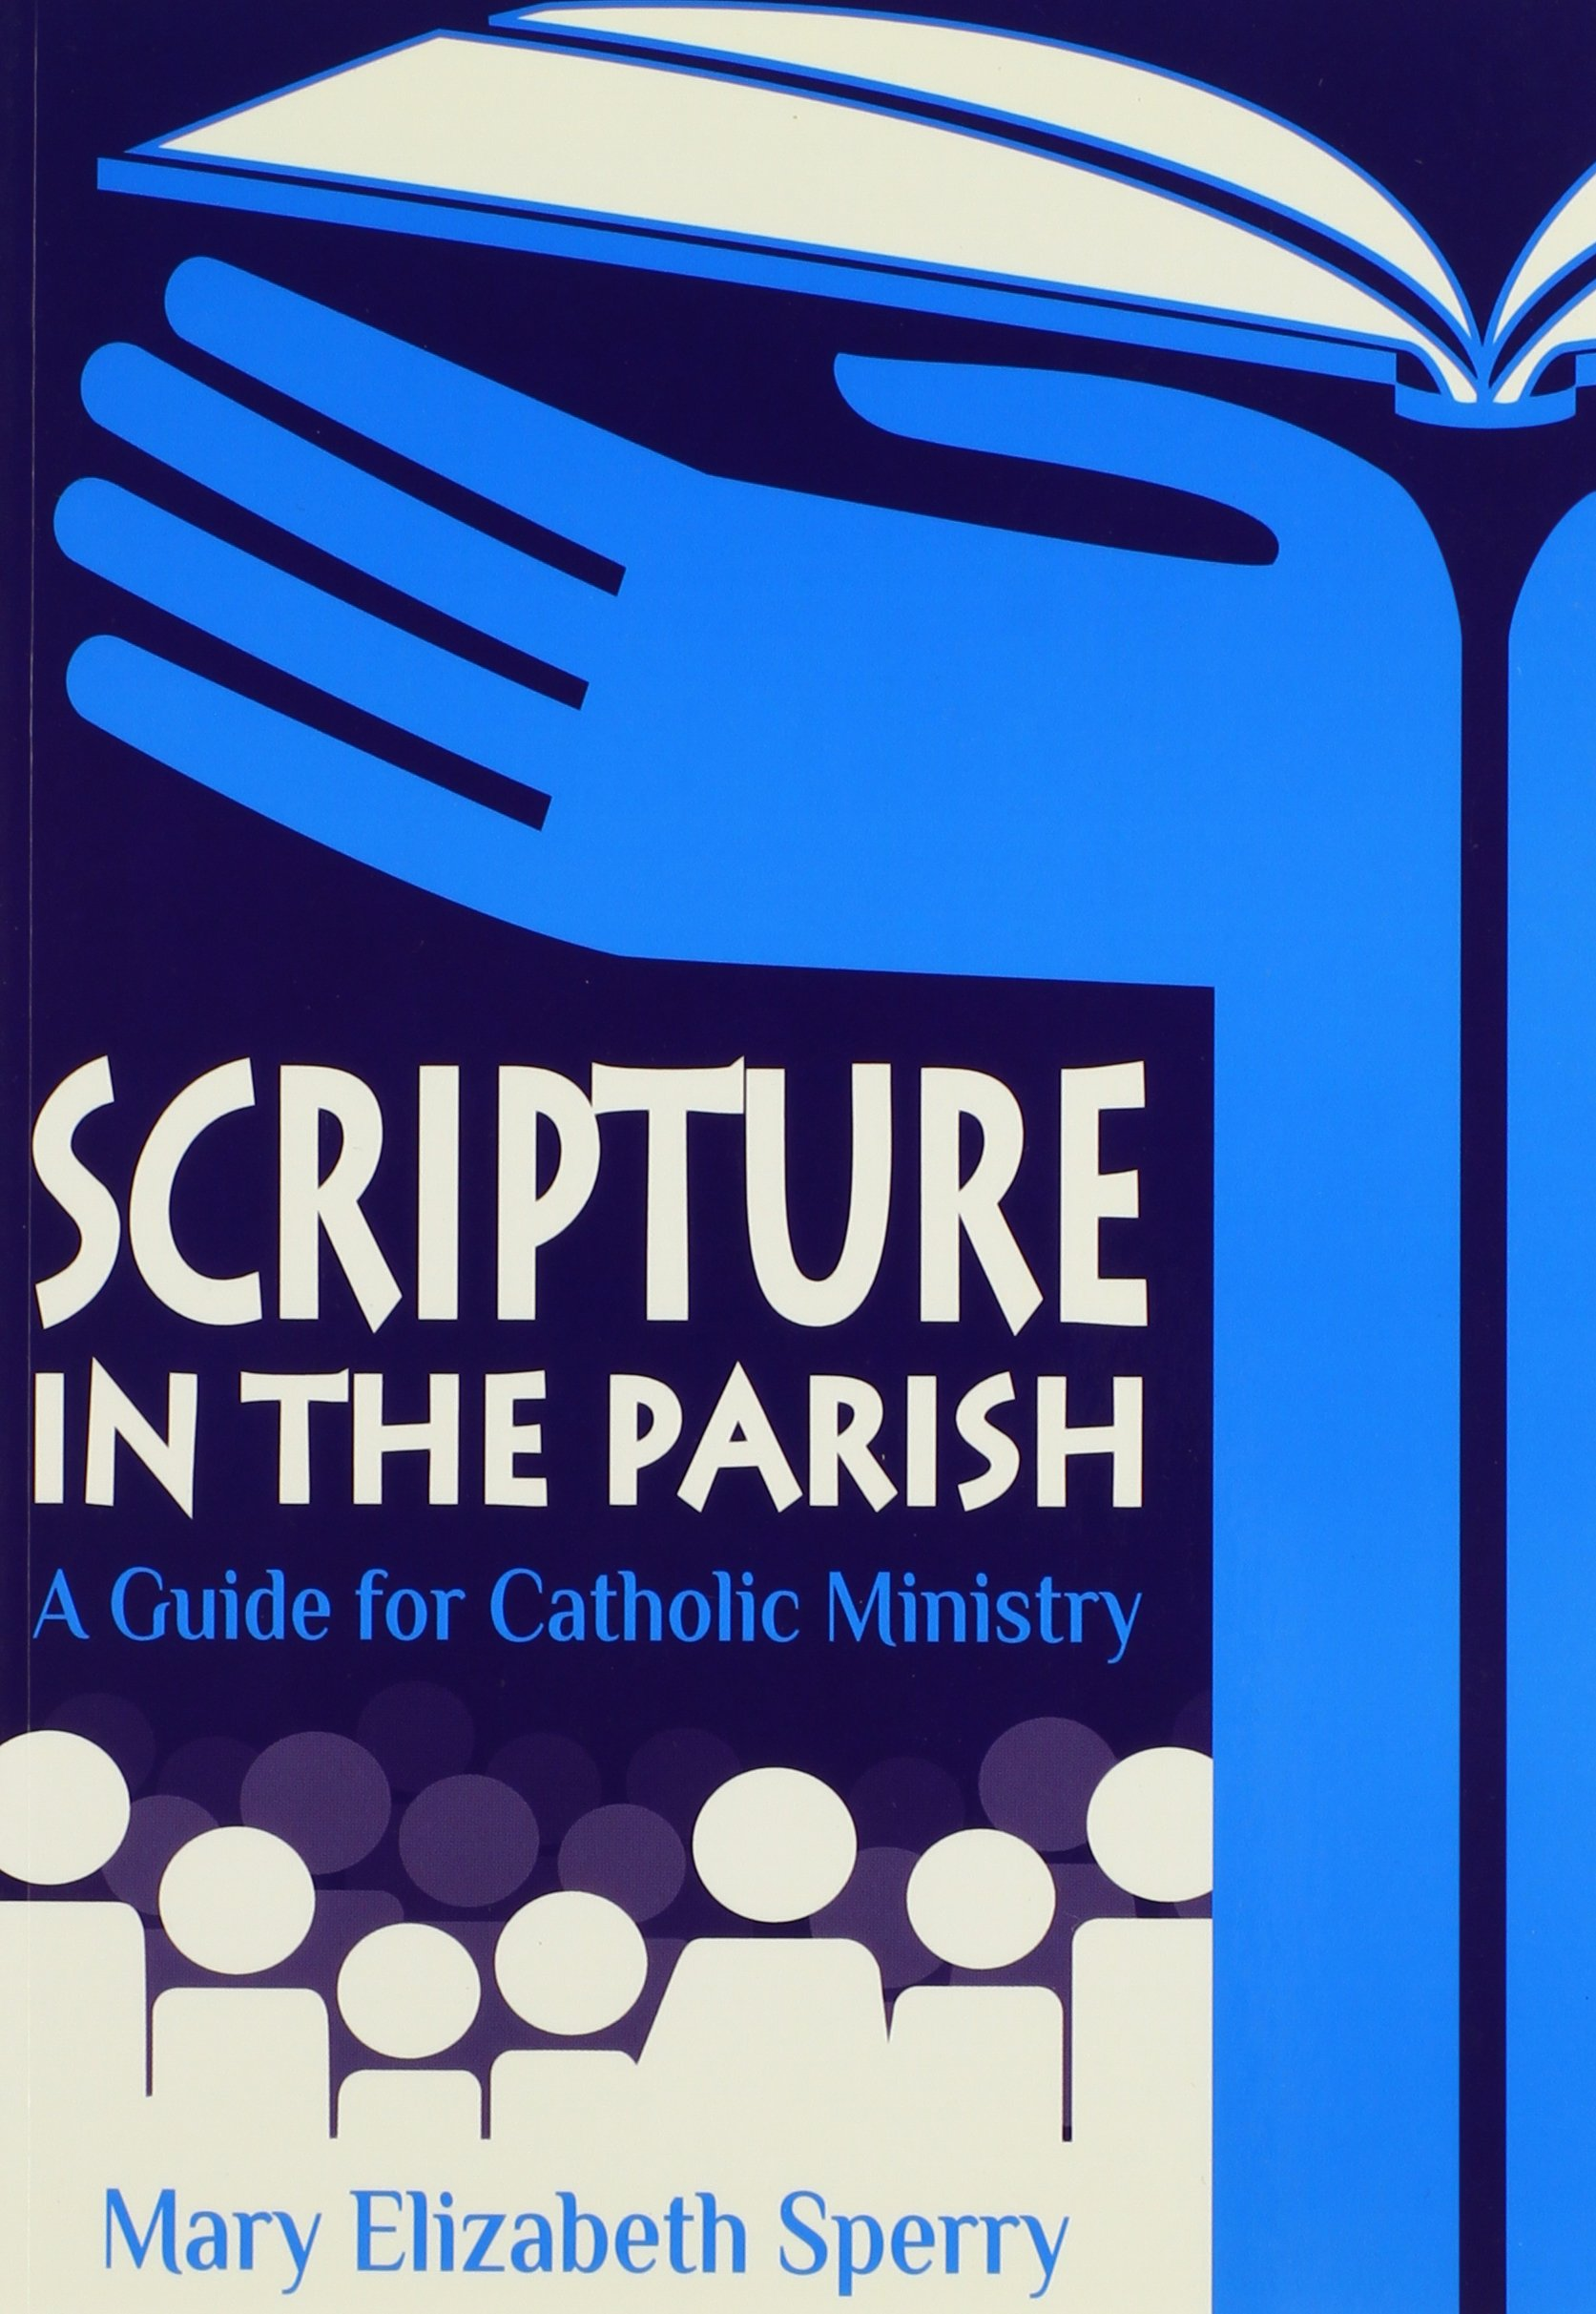 Scripture in the Parish: A Guide for Catholic Ministry: Mary Elizabeth  Sperry: 9780814635209: Amazon.com: Books